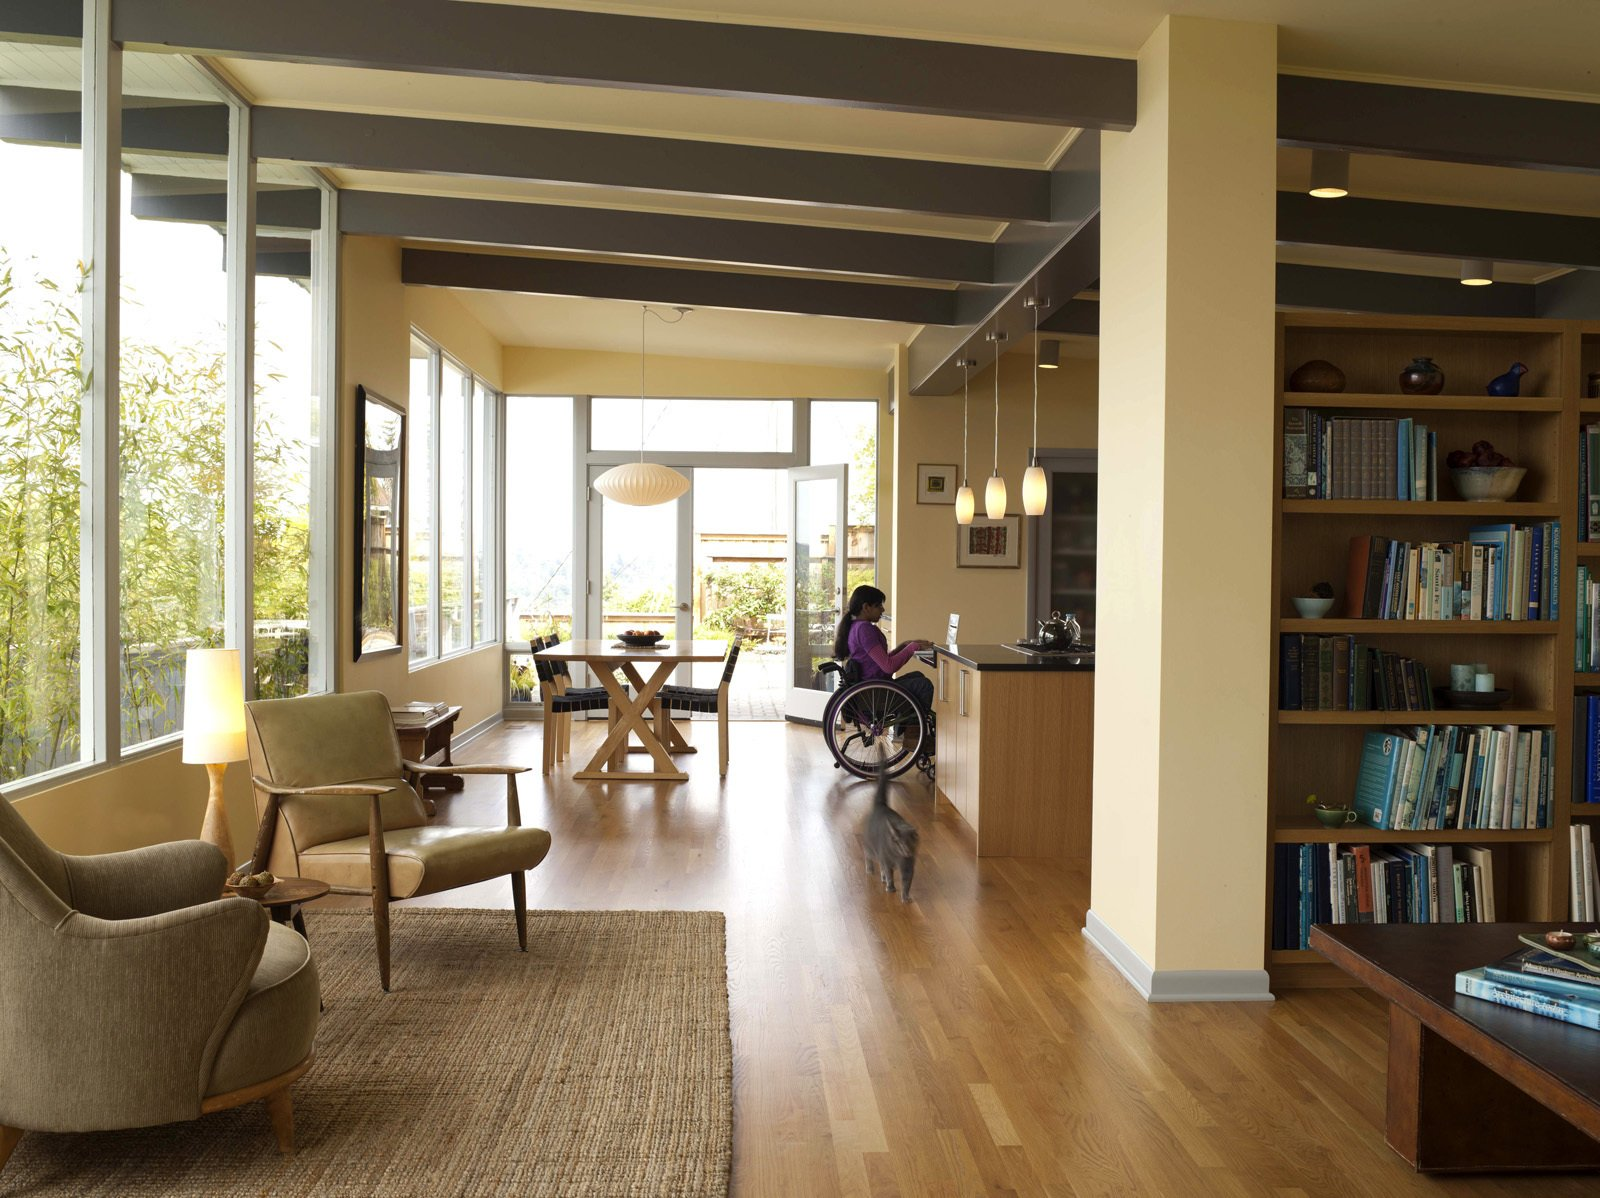 Living Room, Ceiling Lighting, Bookcase, Table, Shelves, Pendant Lighting, Storage, Coffee Tables, Rug Floor, Medium Hardwood Floor, Chair, and End Tables As an architect who specializes in universal access design and ADA compliance and as a wheelchair user herself, Karen Braitmayer was no stranger to the challenges of accessible design. Although she had been able to take advantage of her 1954 home's single-level, open layout, as her daughter (also a wheelchair user) grew up, the family's accessibility needs also shifted. The main living area includes a more formal sitting area near the entrance, the dining area, Braitmayer's workspace, and the kitchen—you can see the couple's daughter working at the island. In the foreground is a pair of midcentury chairs; at left is a Heywood-Wakefield that Braitmayer found at an antiques shop. Seattle-based designer Lucy Johnson completed the interiors. The windows are from Lindal, and the exterior doors are from Marvin.  Photo 1 of 1 in The Obstacles That Drive Wheelchair Users Crazy from Highly Accessible